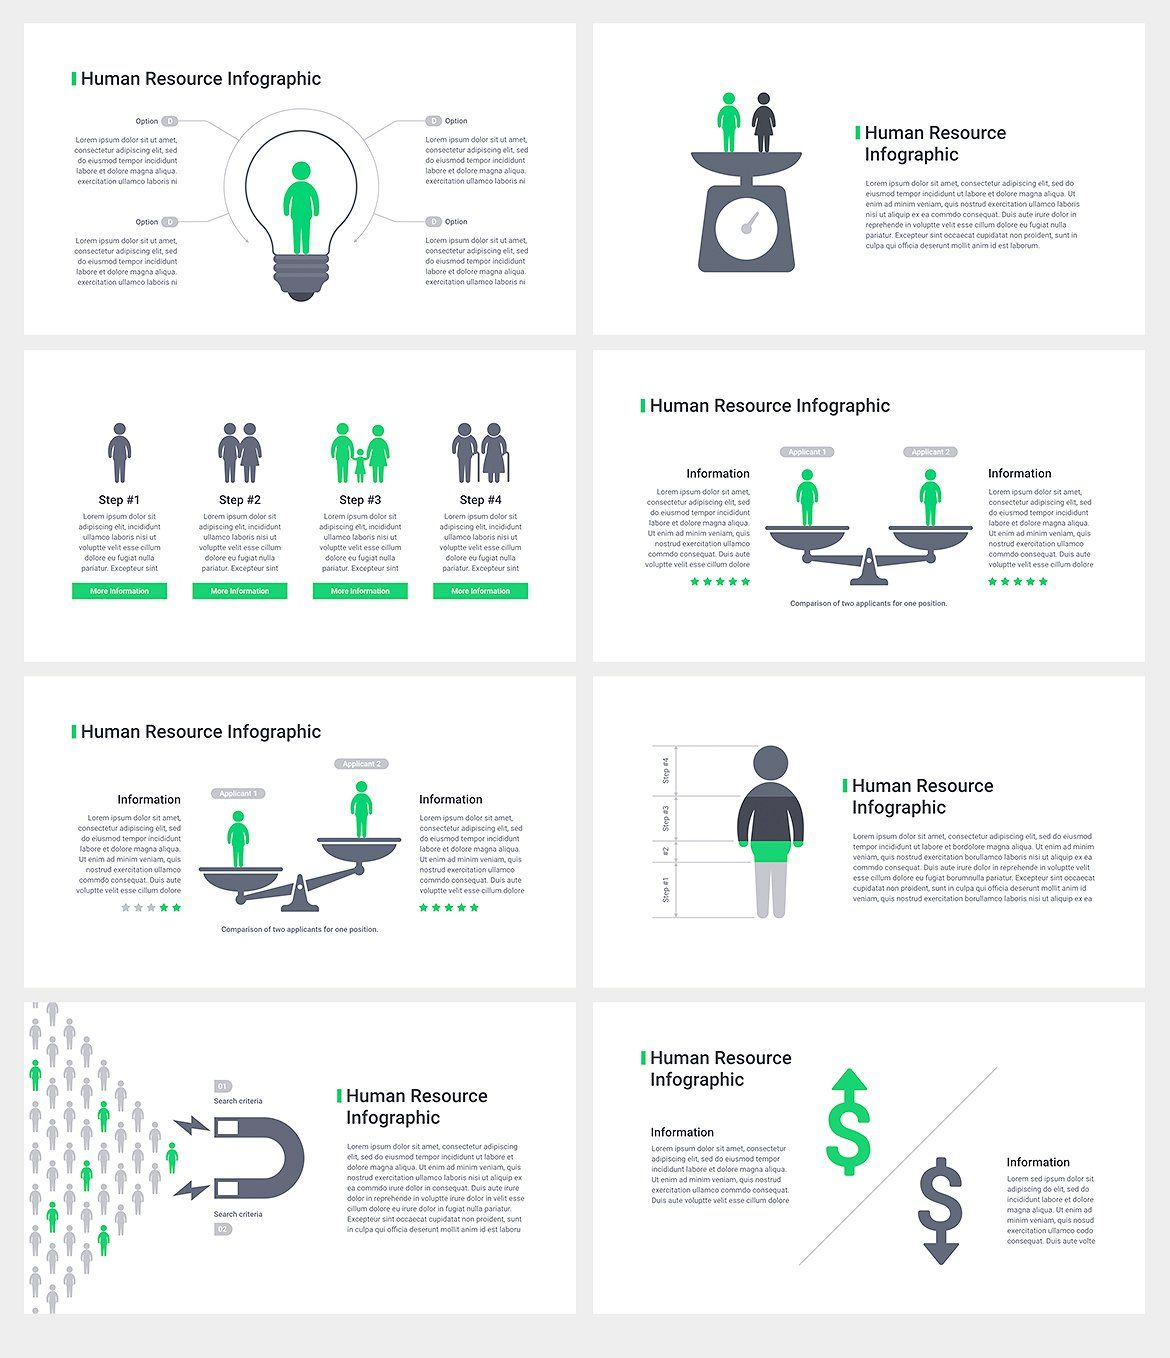 Human Resource Hrm Google Slides Human Resources Infographic Keynote Template Human Resources